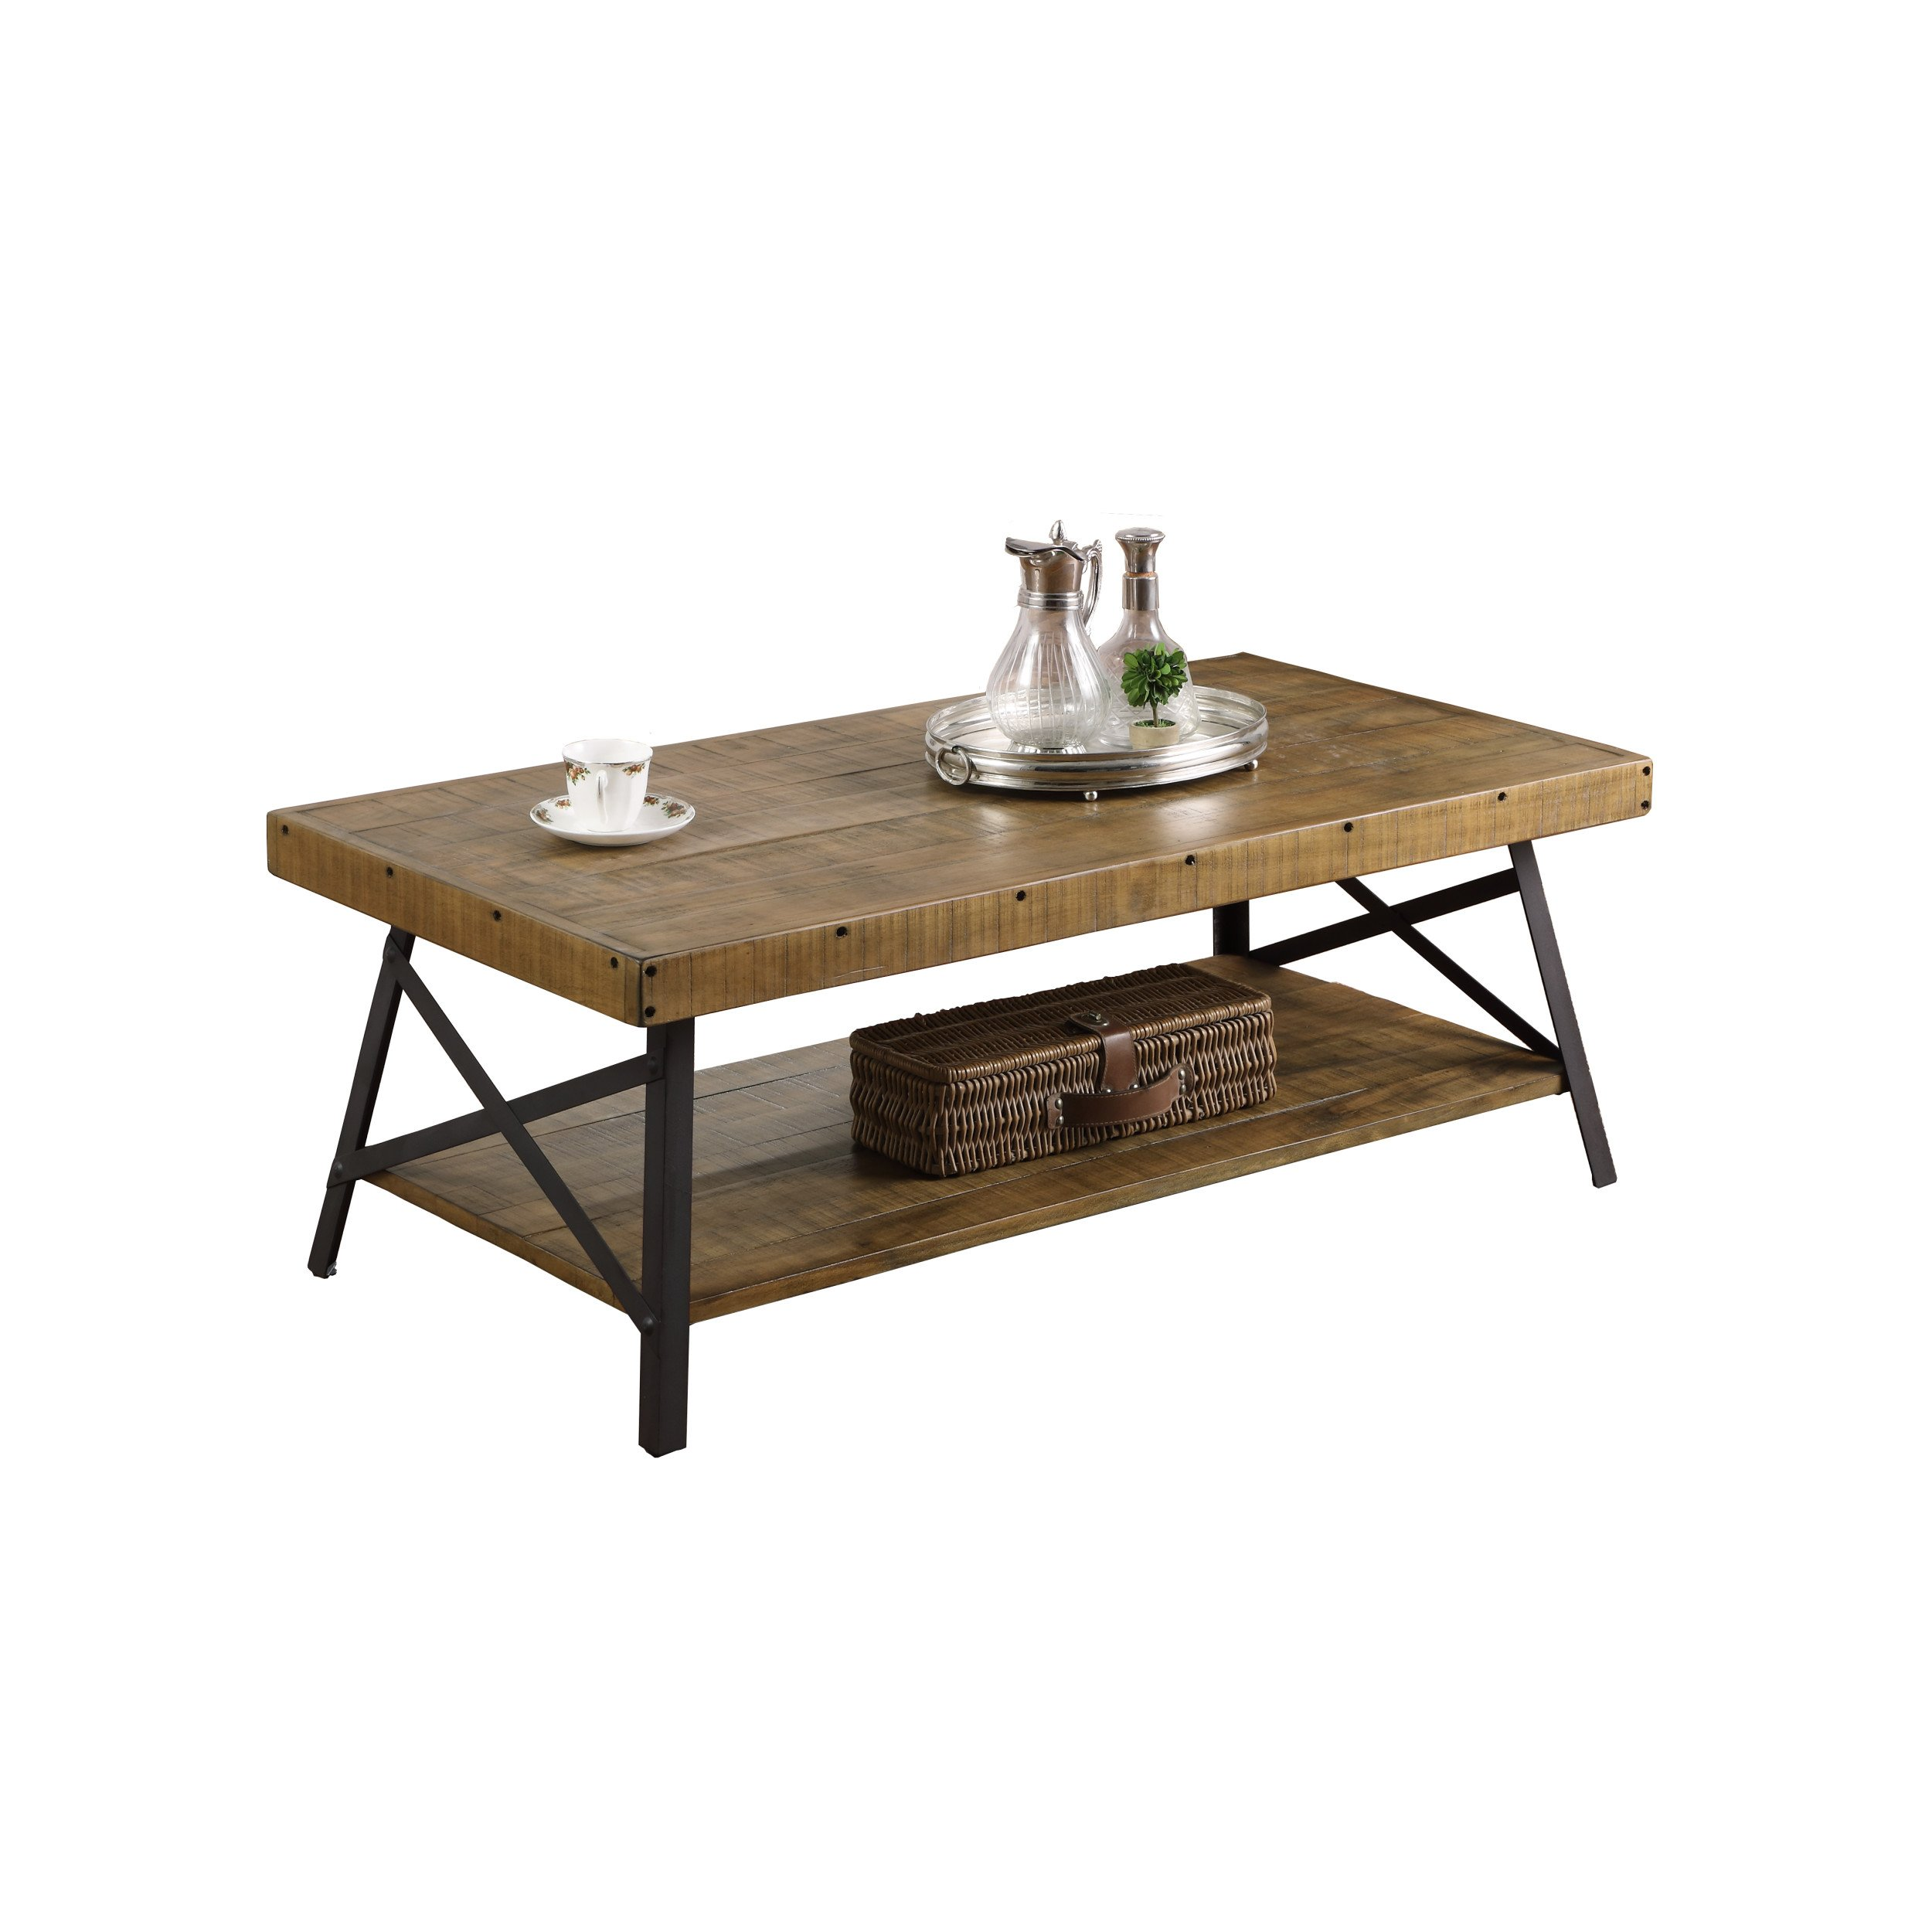 Incroyable Emerald Home Chandler Rustic Industrial Solid Wood And Steel Coffee Table  With Open Shelf